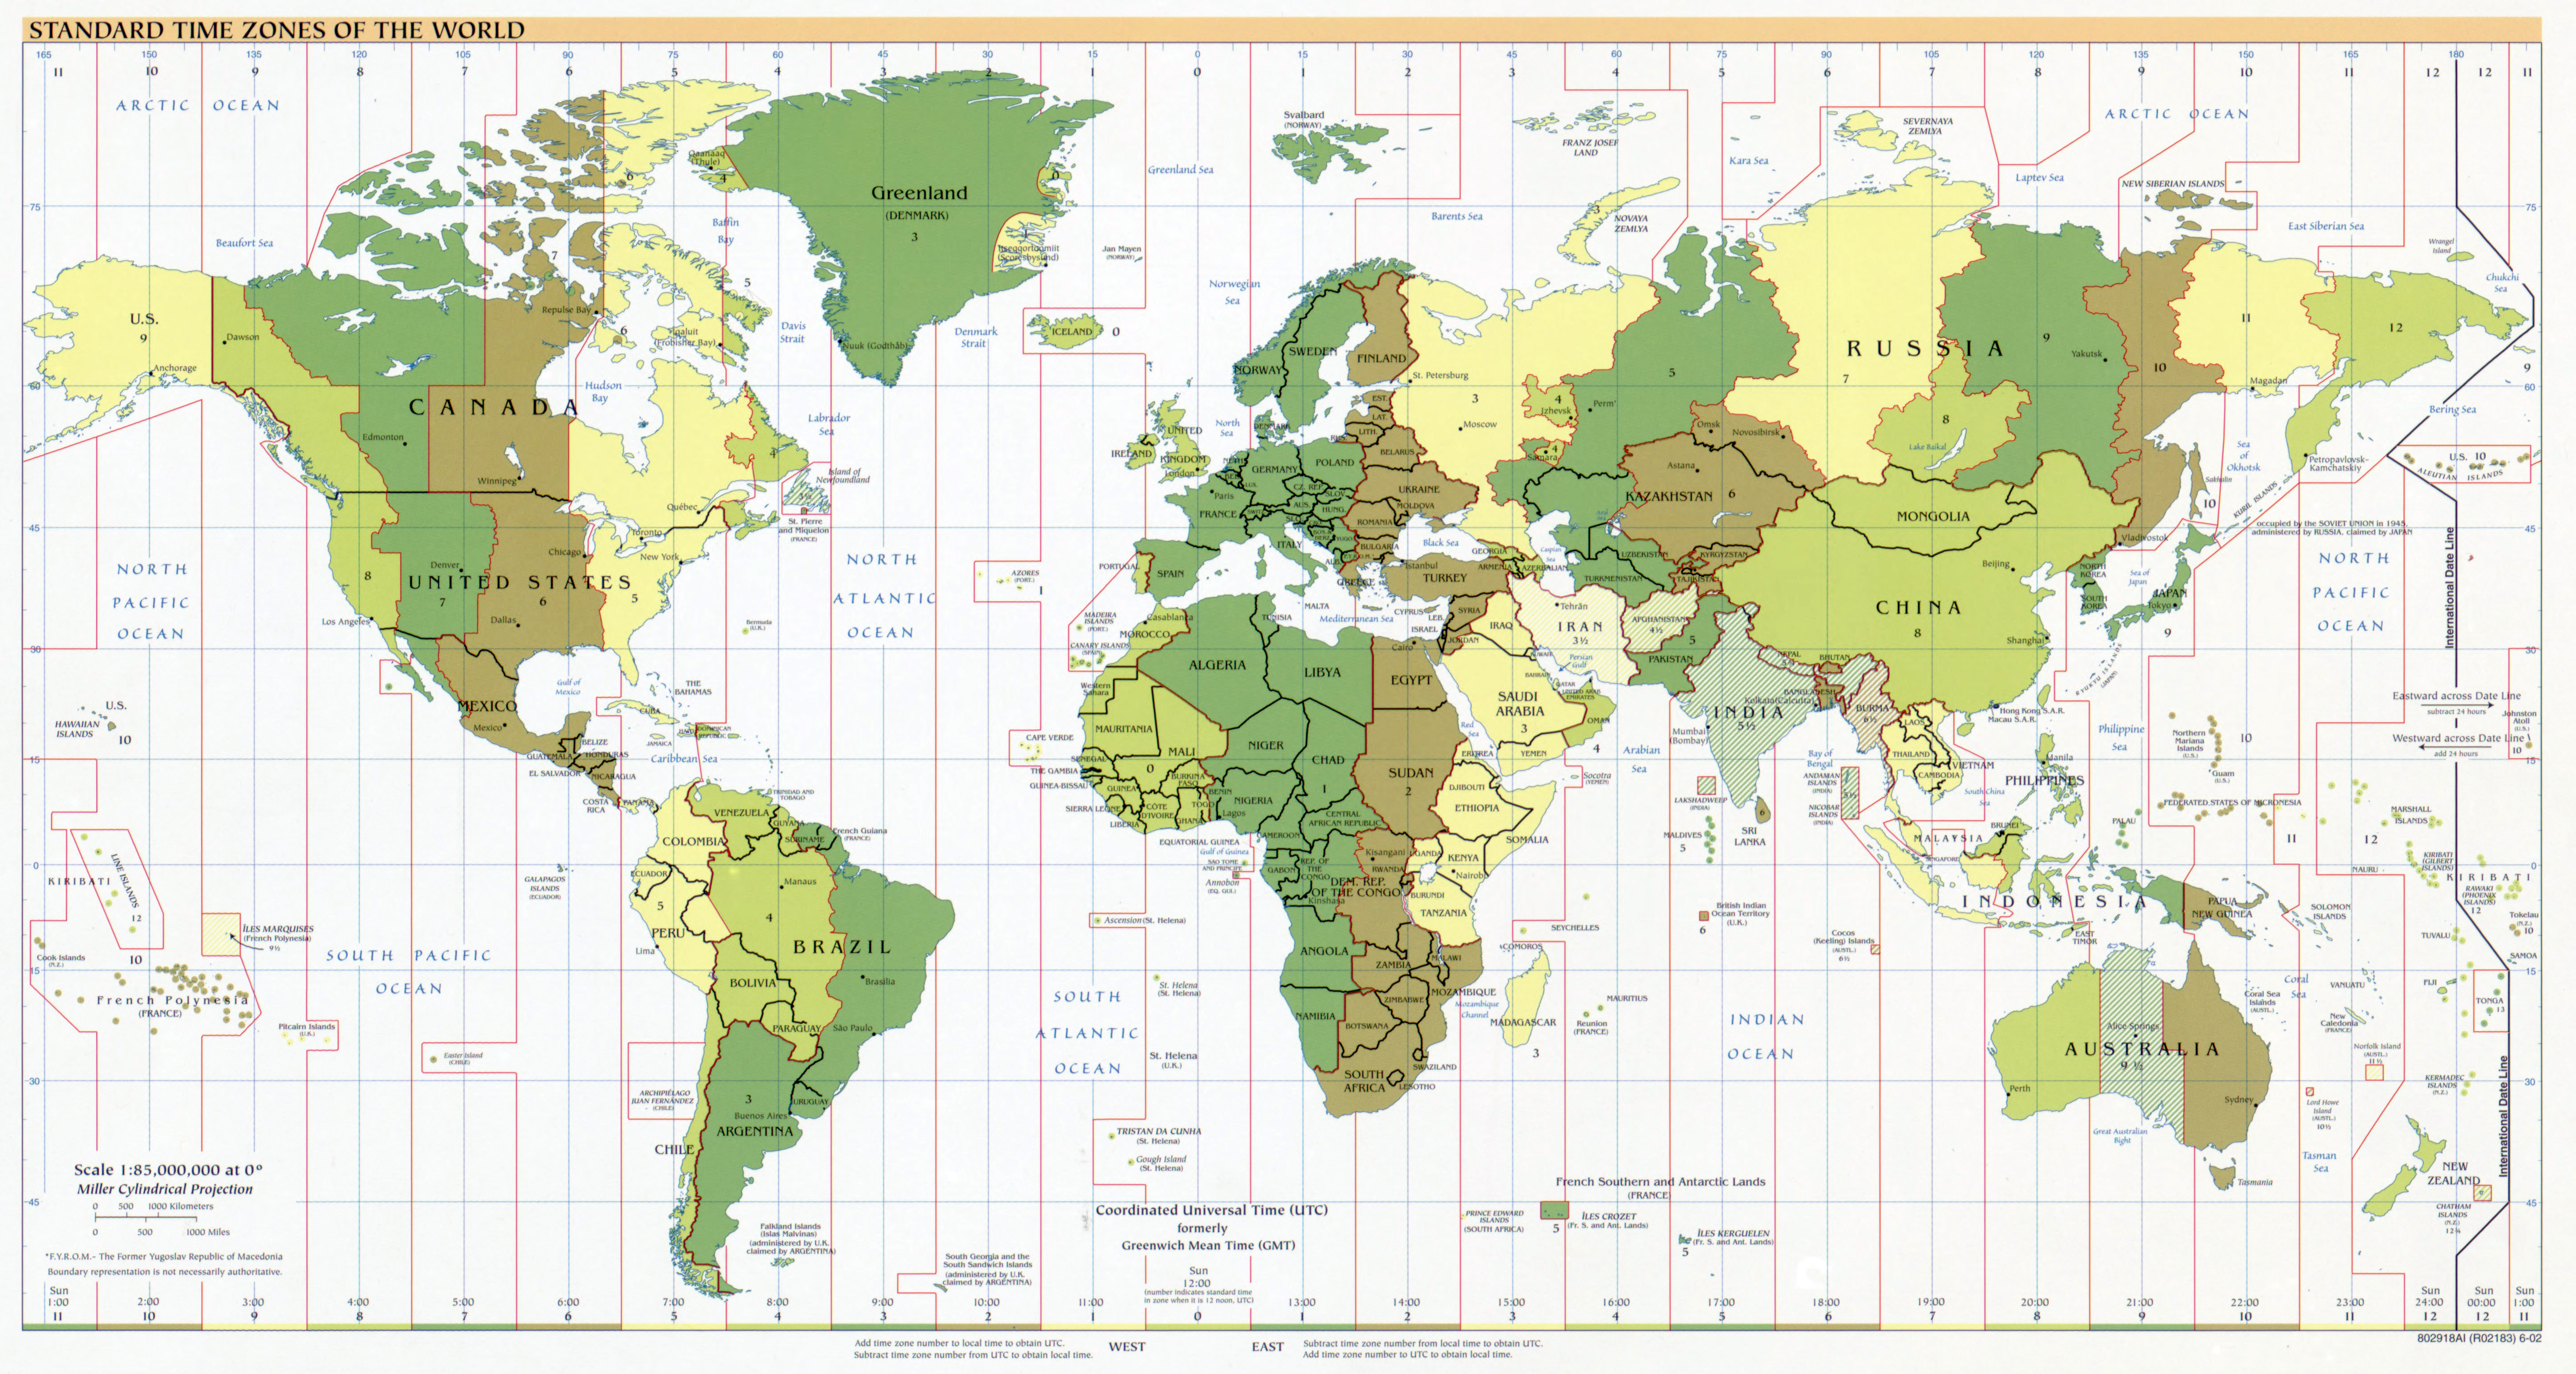 Large scale standard time zones of the world map 2002 time zones large scale standard time zones of the world map 2002 gumiabroncs Gallery